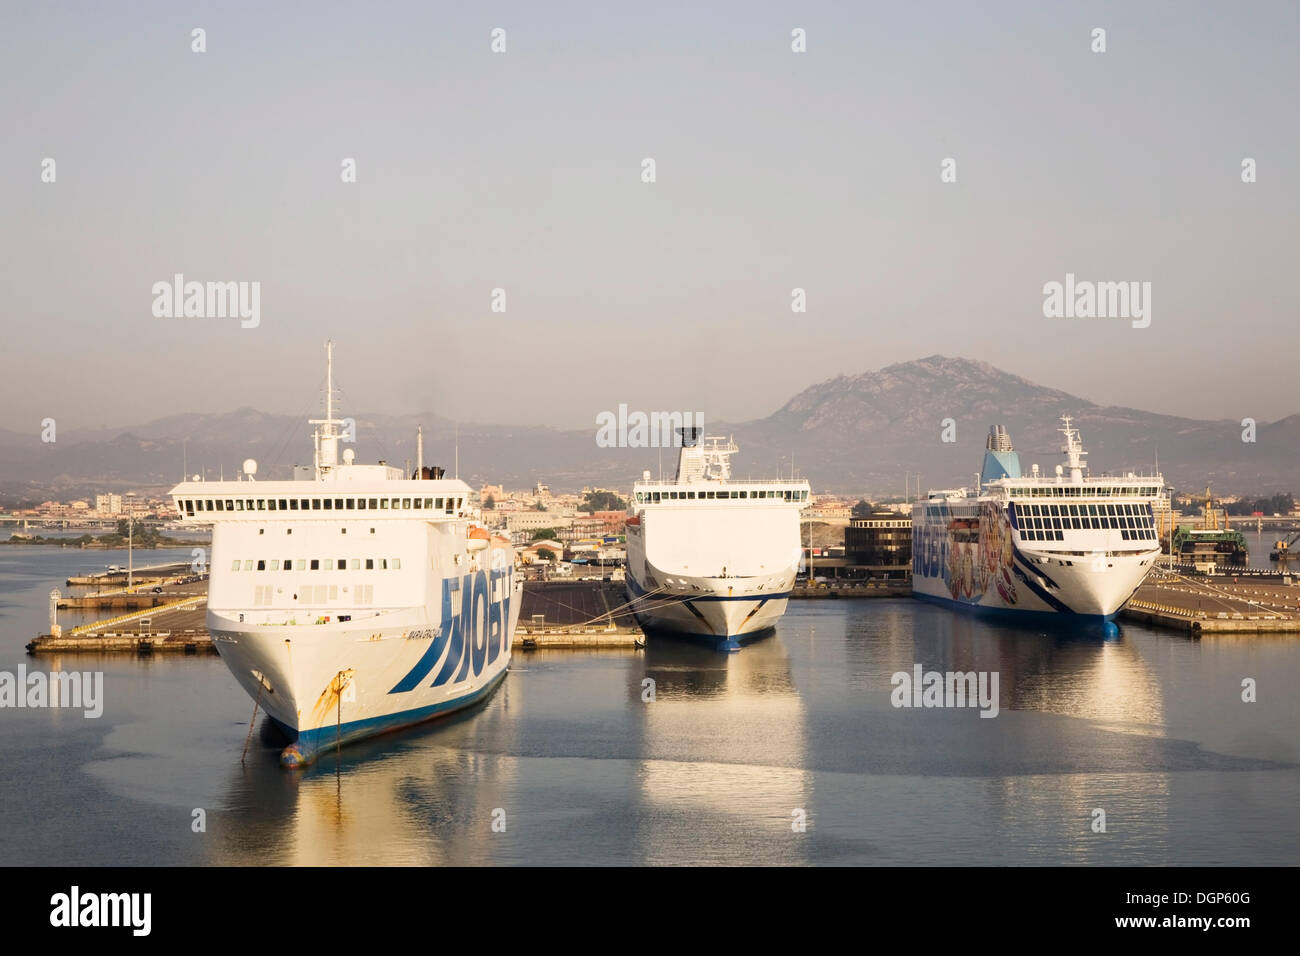 sardinia ferry stockfotos sardinia ferry bilder alamy. Black Bedroom Furniture Sets. Home Design Ideas